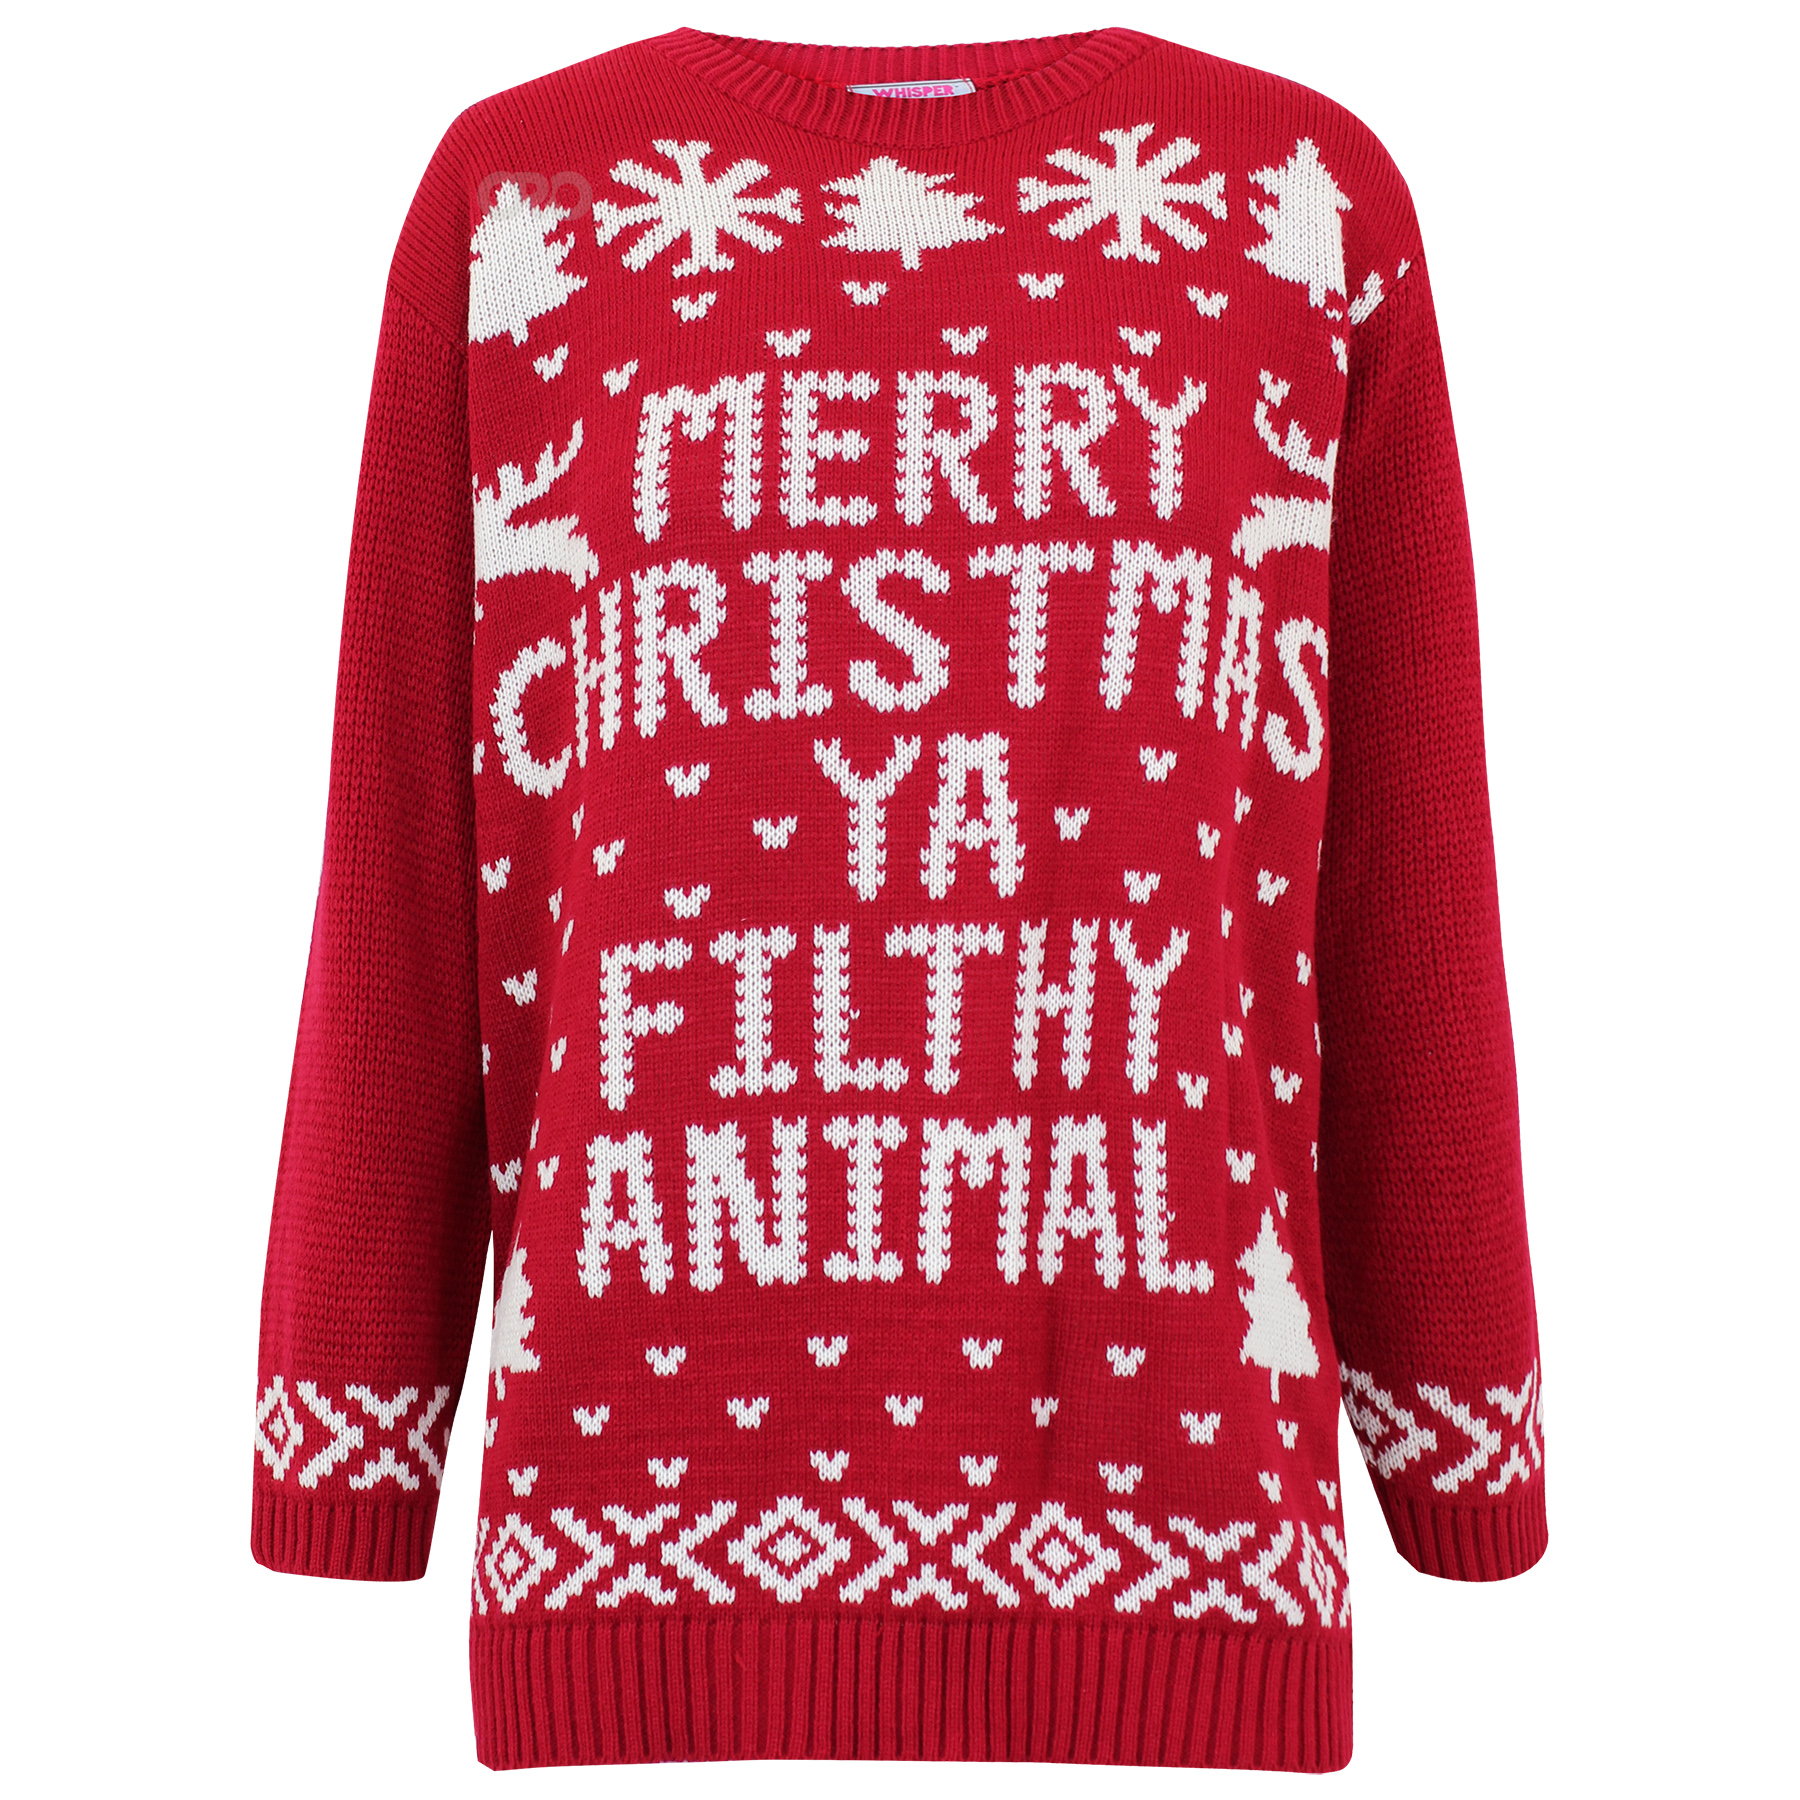 Friday December 12 is Christmas Jumper Day, sponsored by Save The Children. So you can wear your jumper, donate and then feel awesome about yourself because